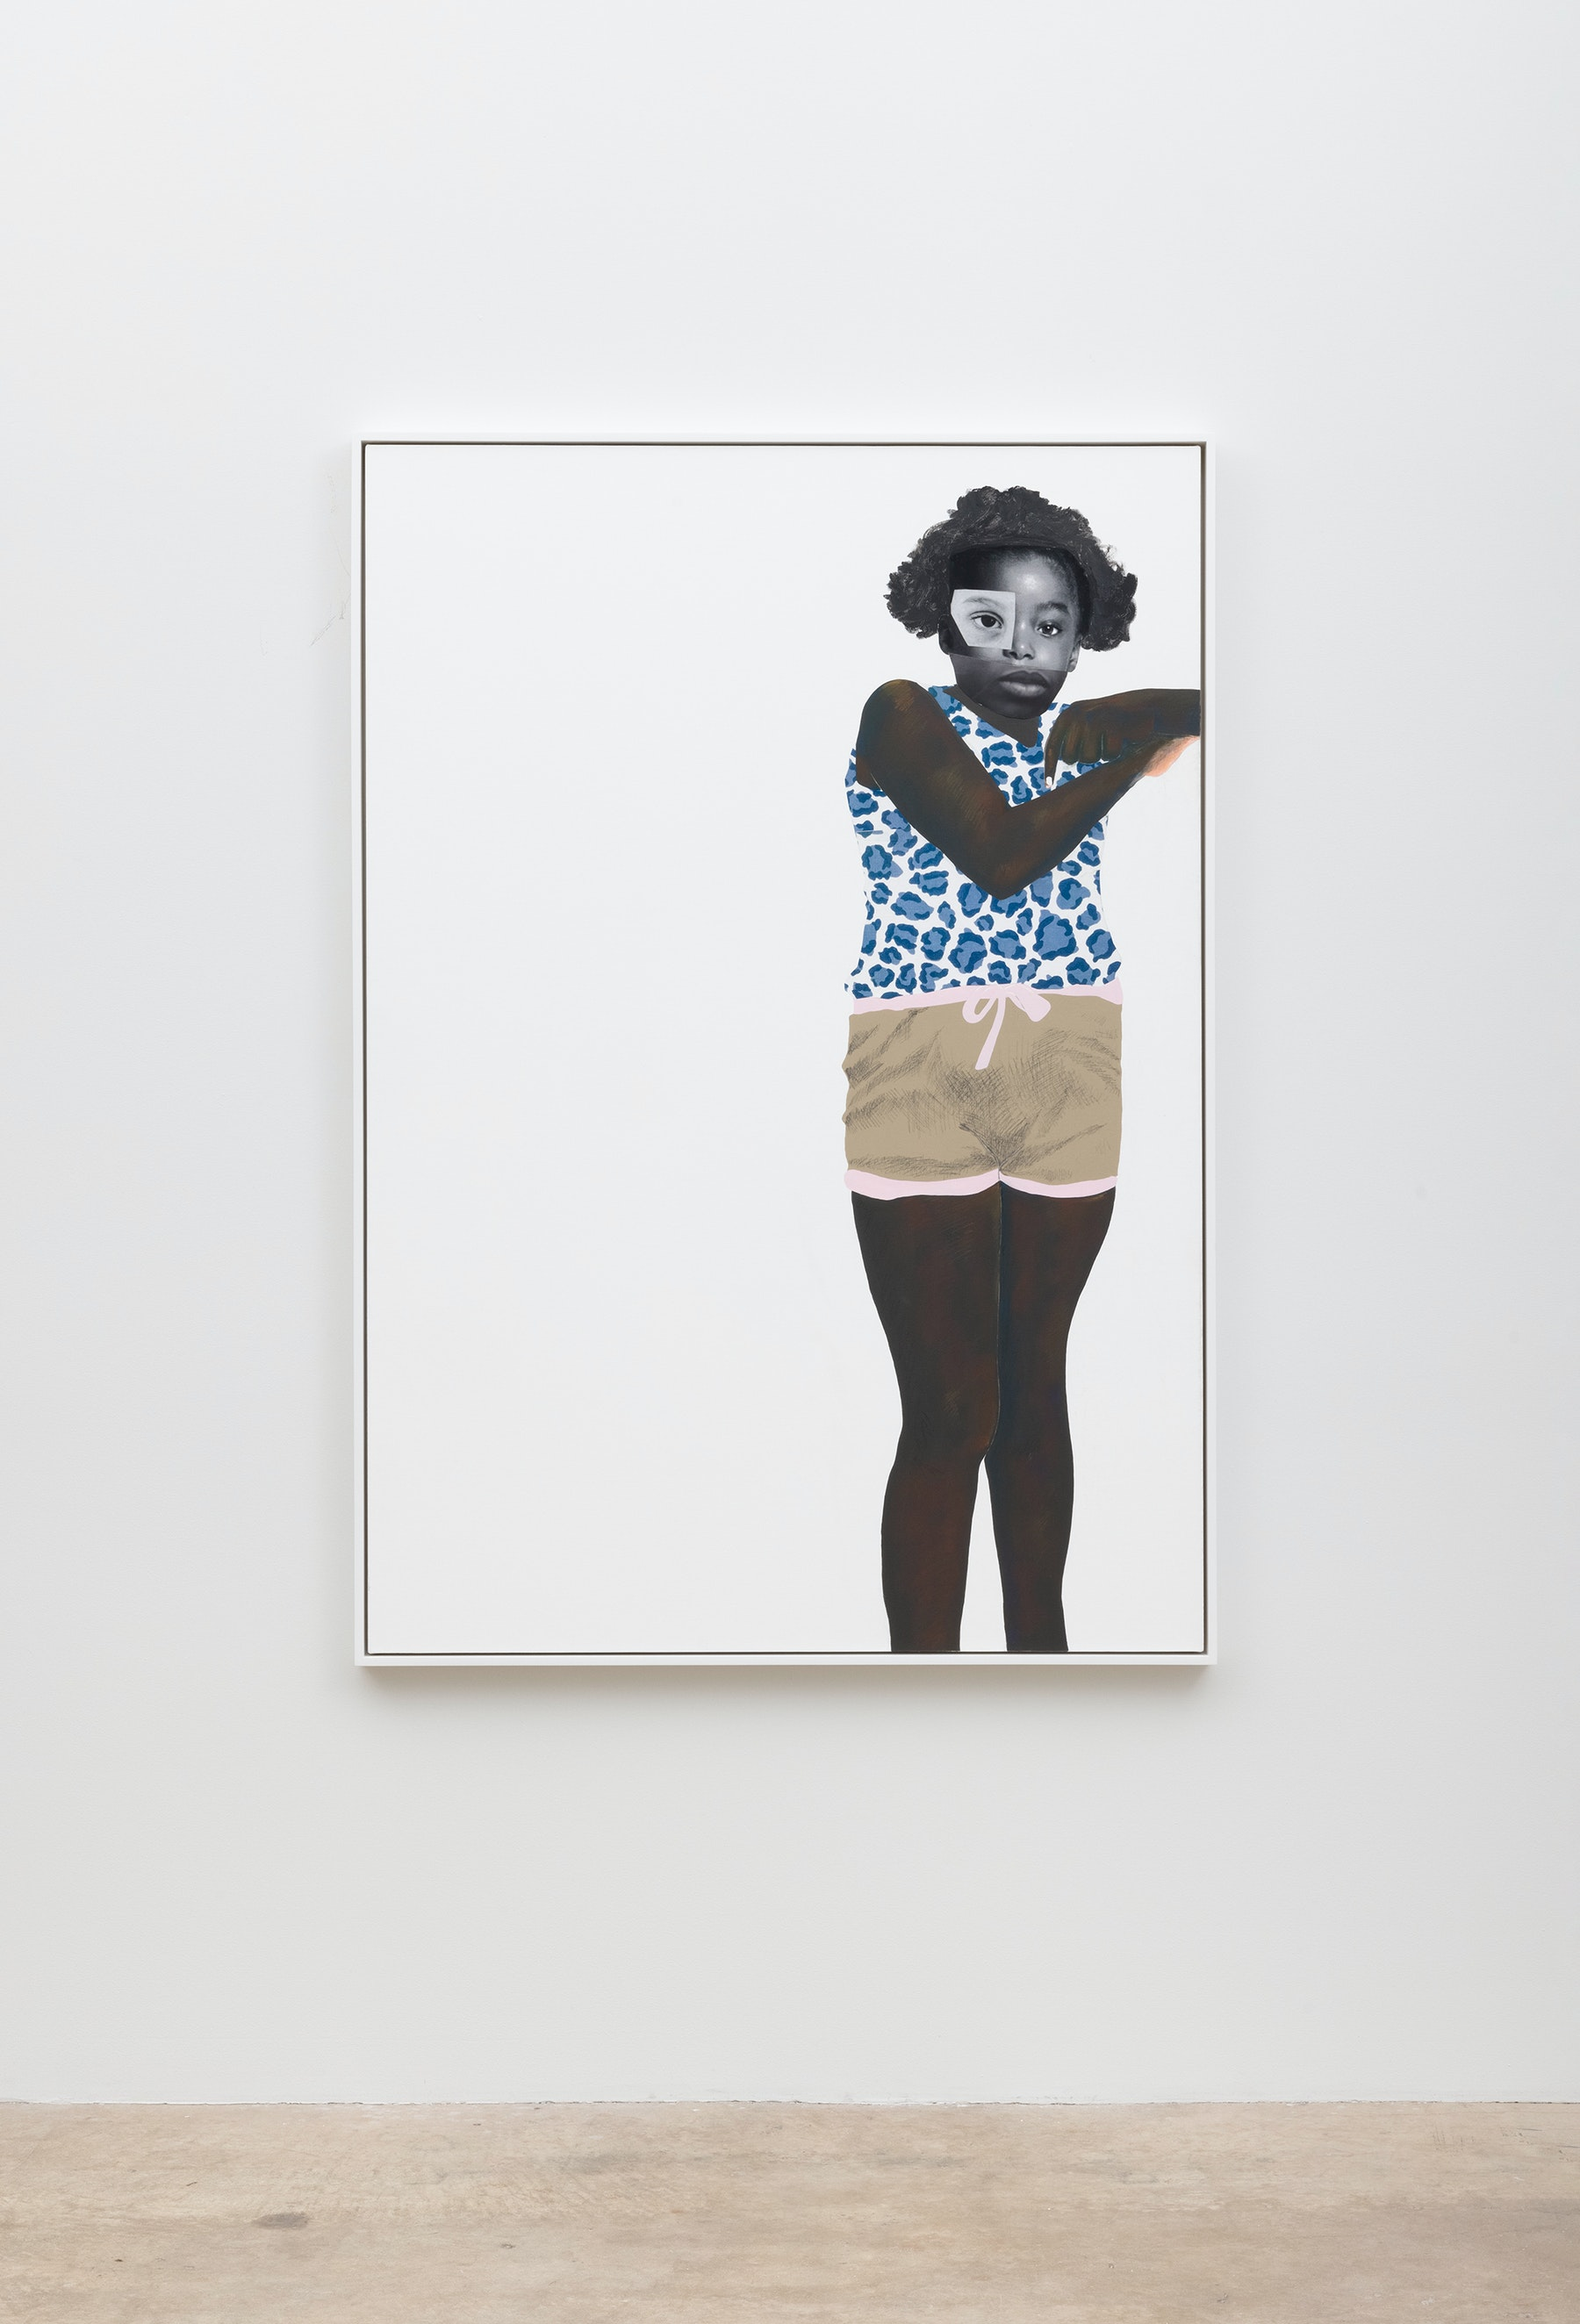 """Deborah Roberts """"Becoming,"""" 2021 Mixed media collage on canvas 65"""" x 45"""" [HxW] (165.1 x 114.3 cm); 66 ¹⁄₂"""" x 46 ¹⁄₂"""" x 2 ¹⁄₄"""" [HxWxD] (168.91 x 118.11 x 5.71 cm) framed Inventory #ROB457 Courtesy of the artist and Vielmetter Los Angeles Photo credit: Jeff McLane"""